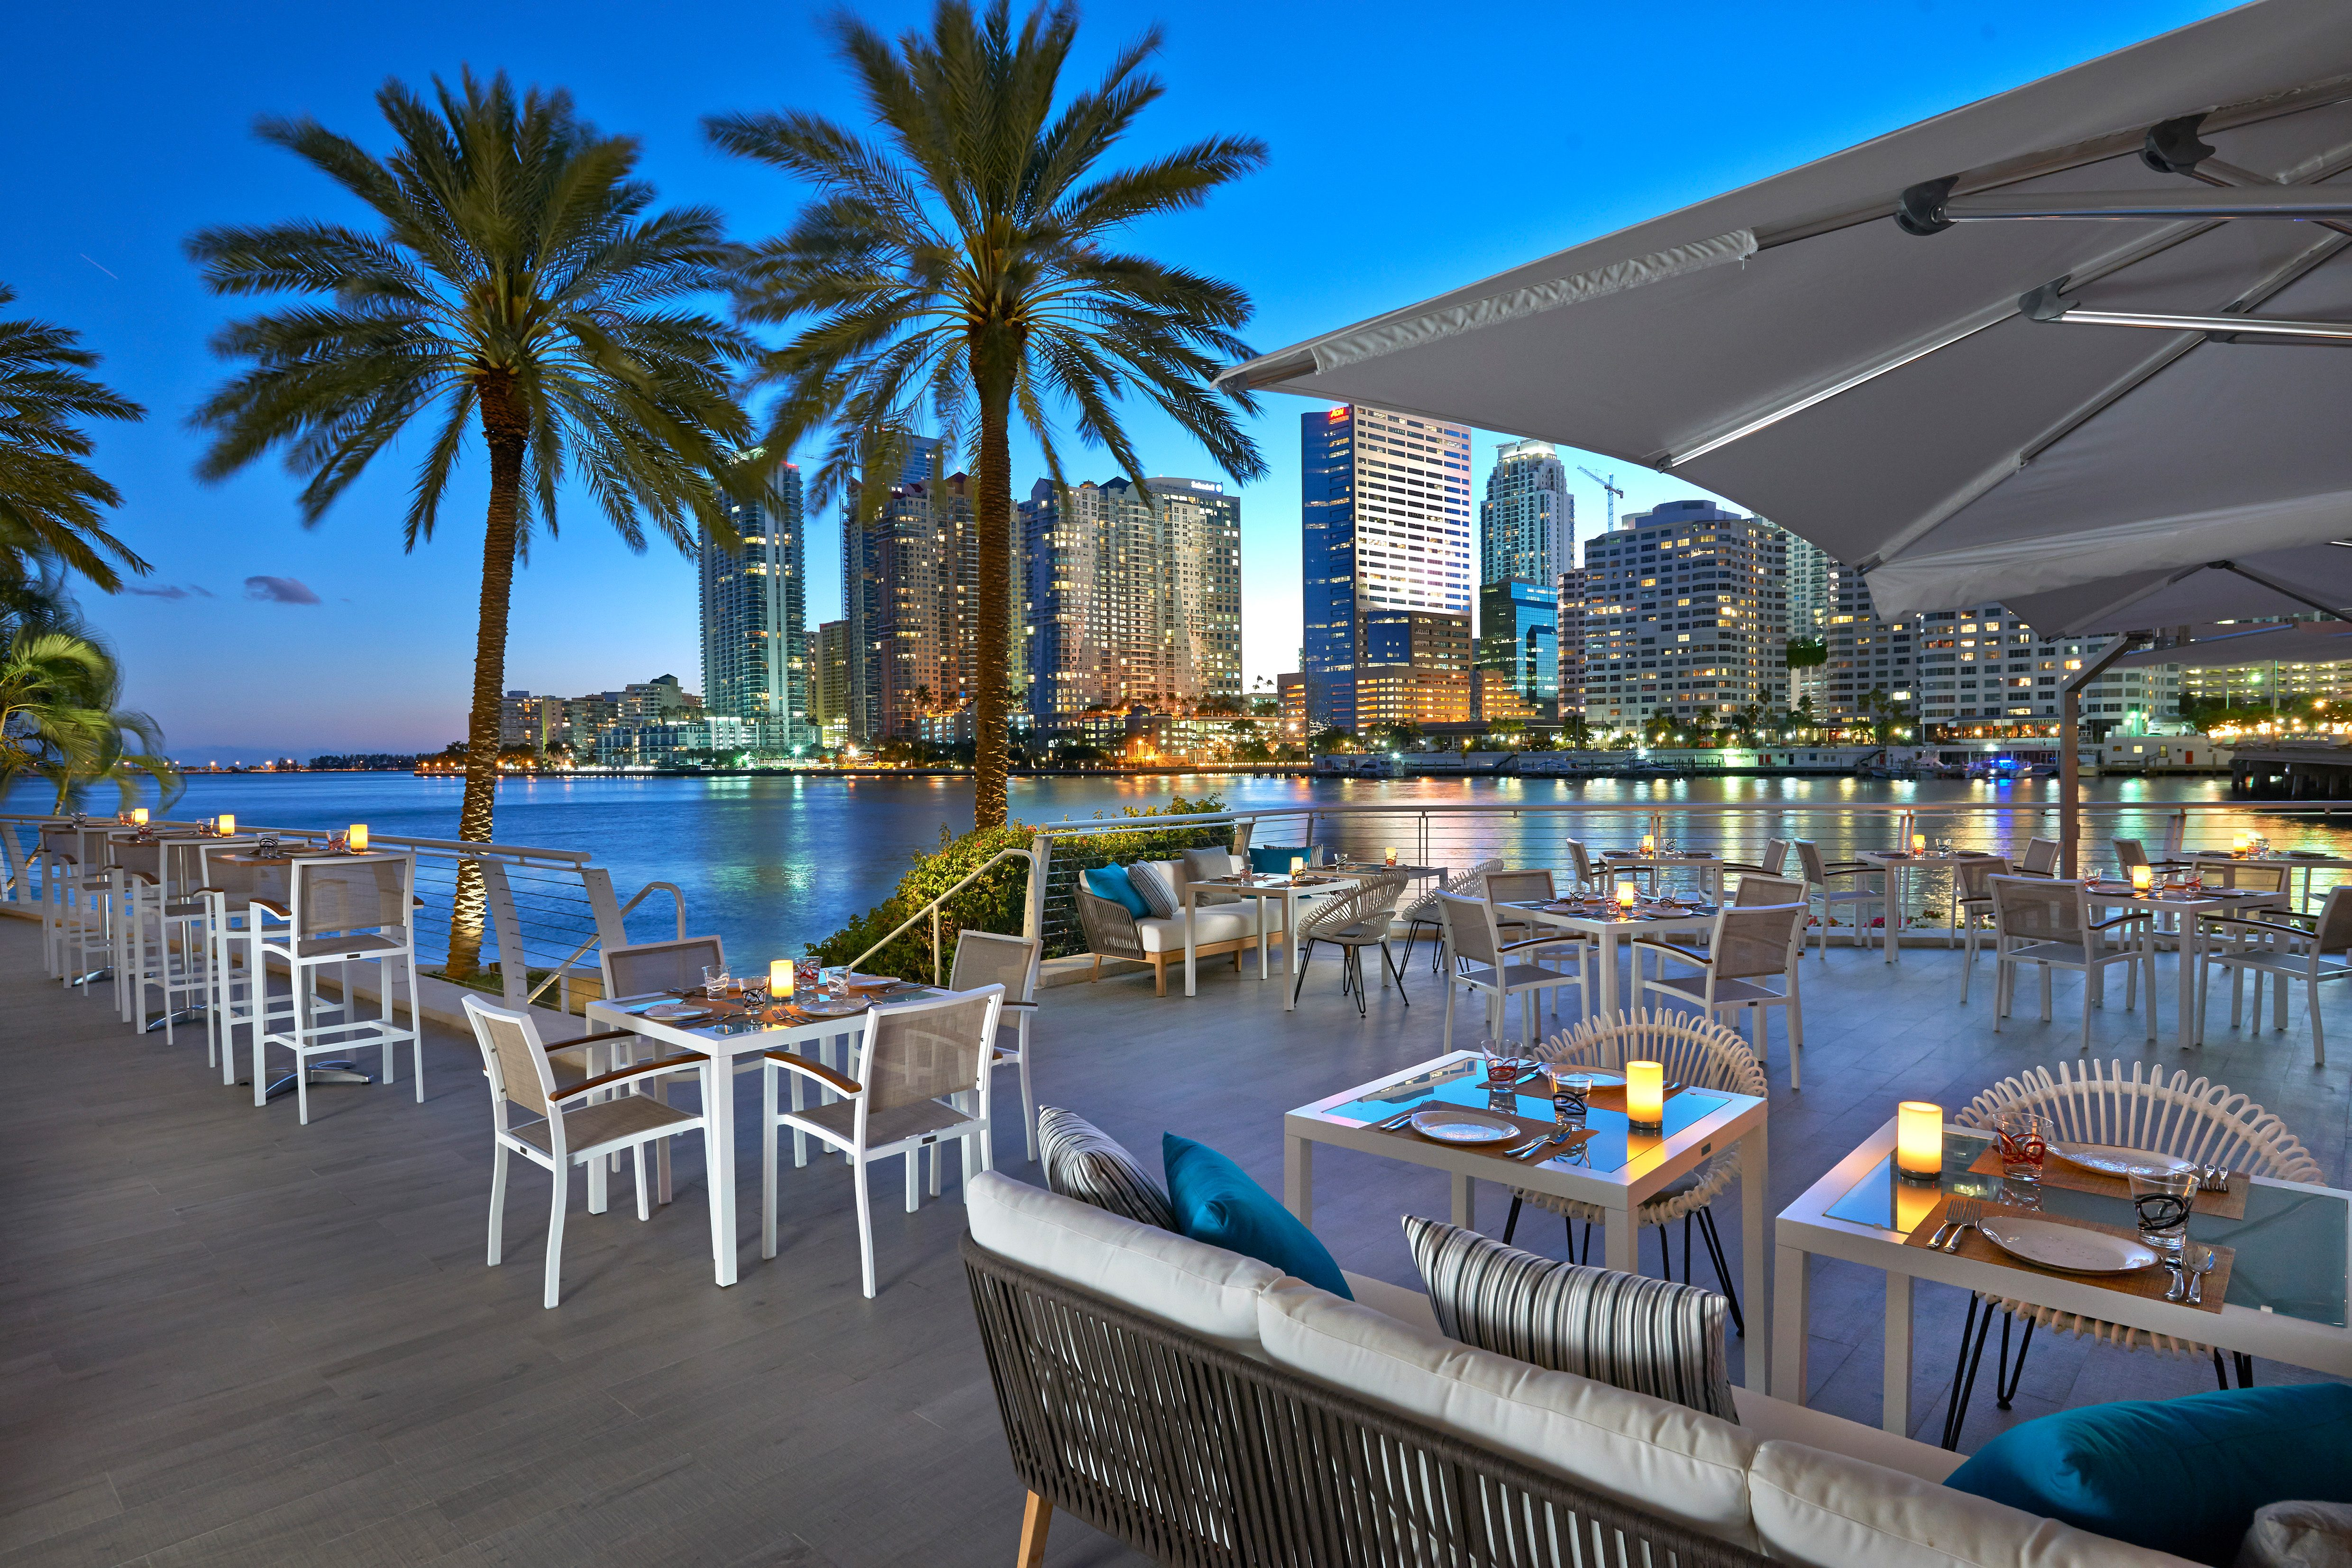 The terrace at La Mar restaurant at Mandarin Oriental, Miami